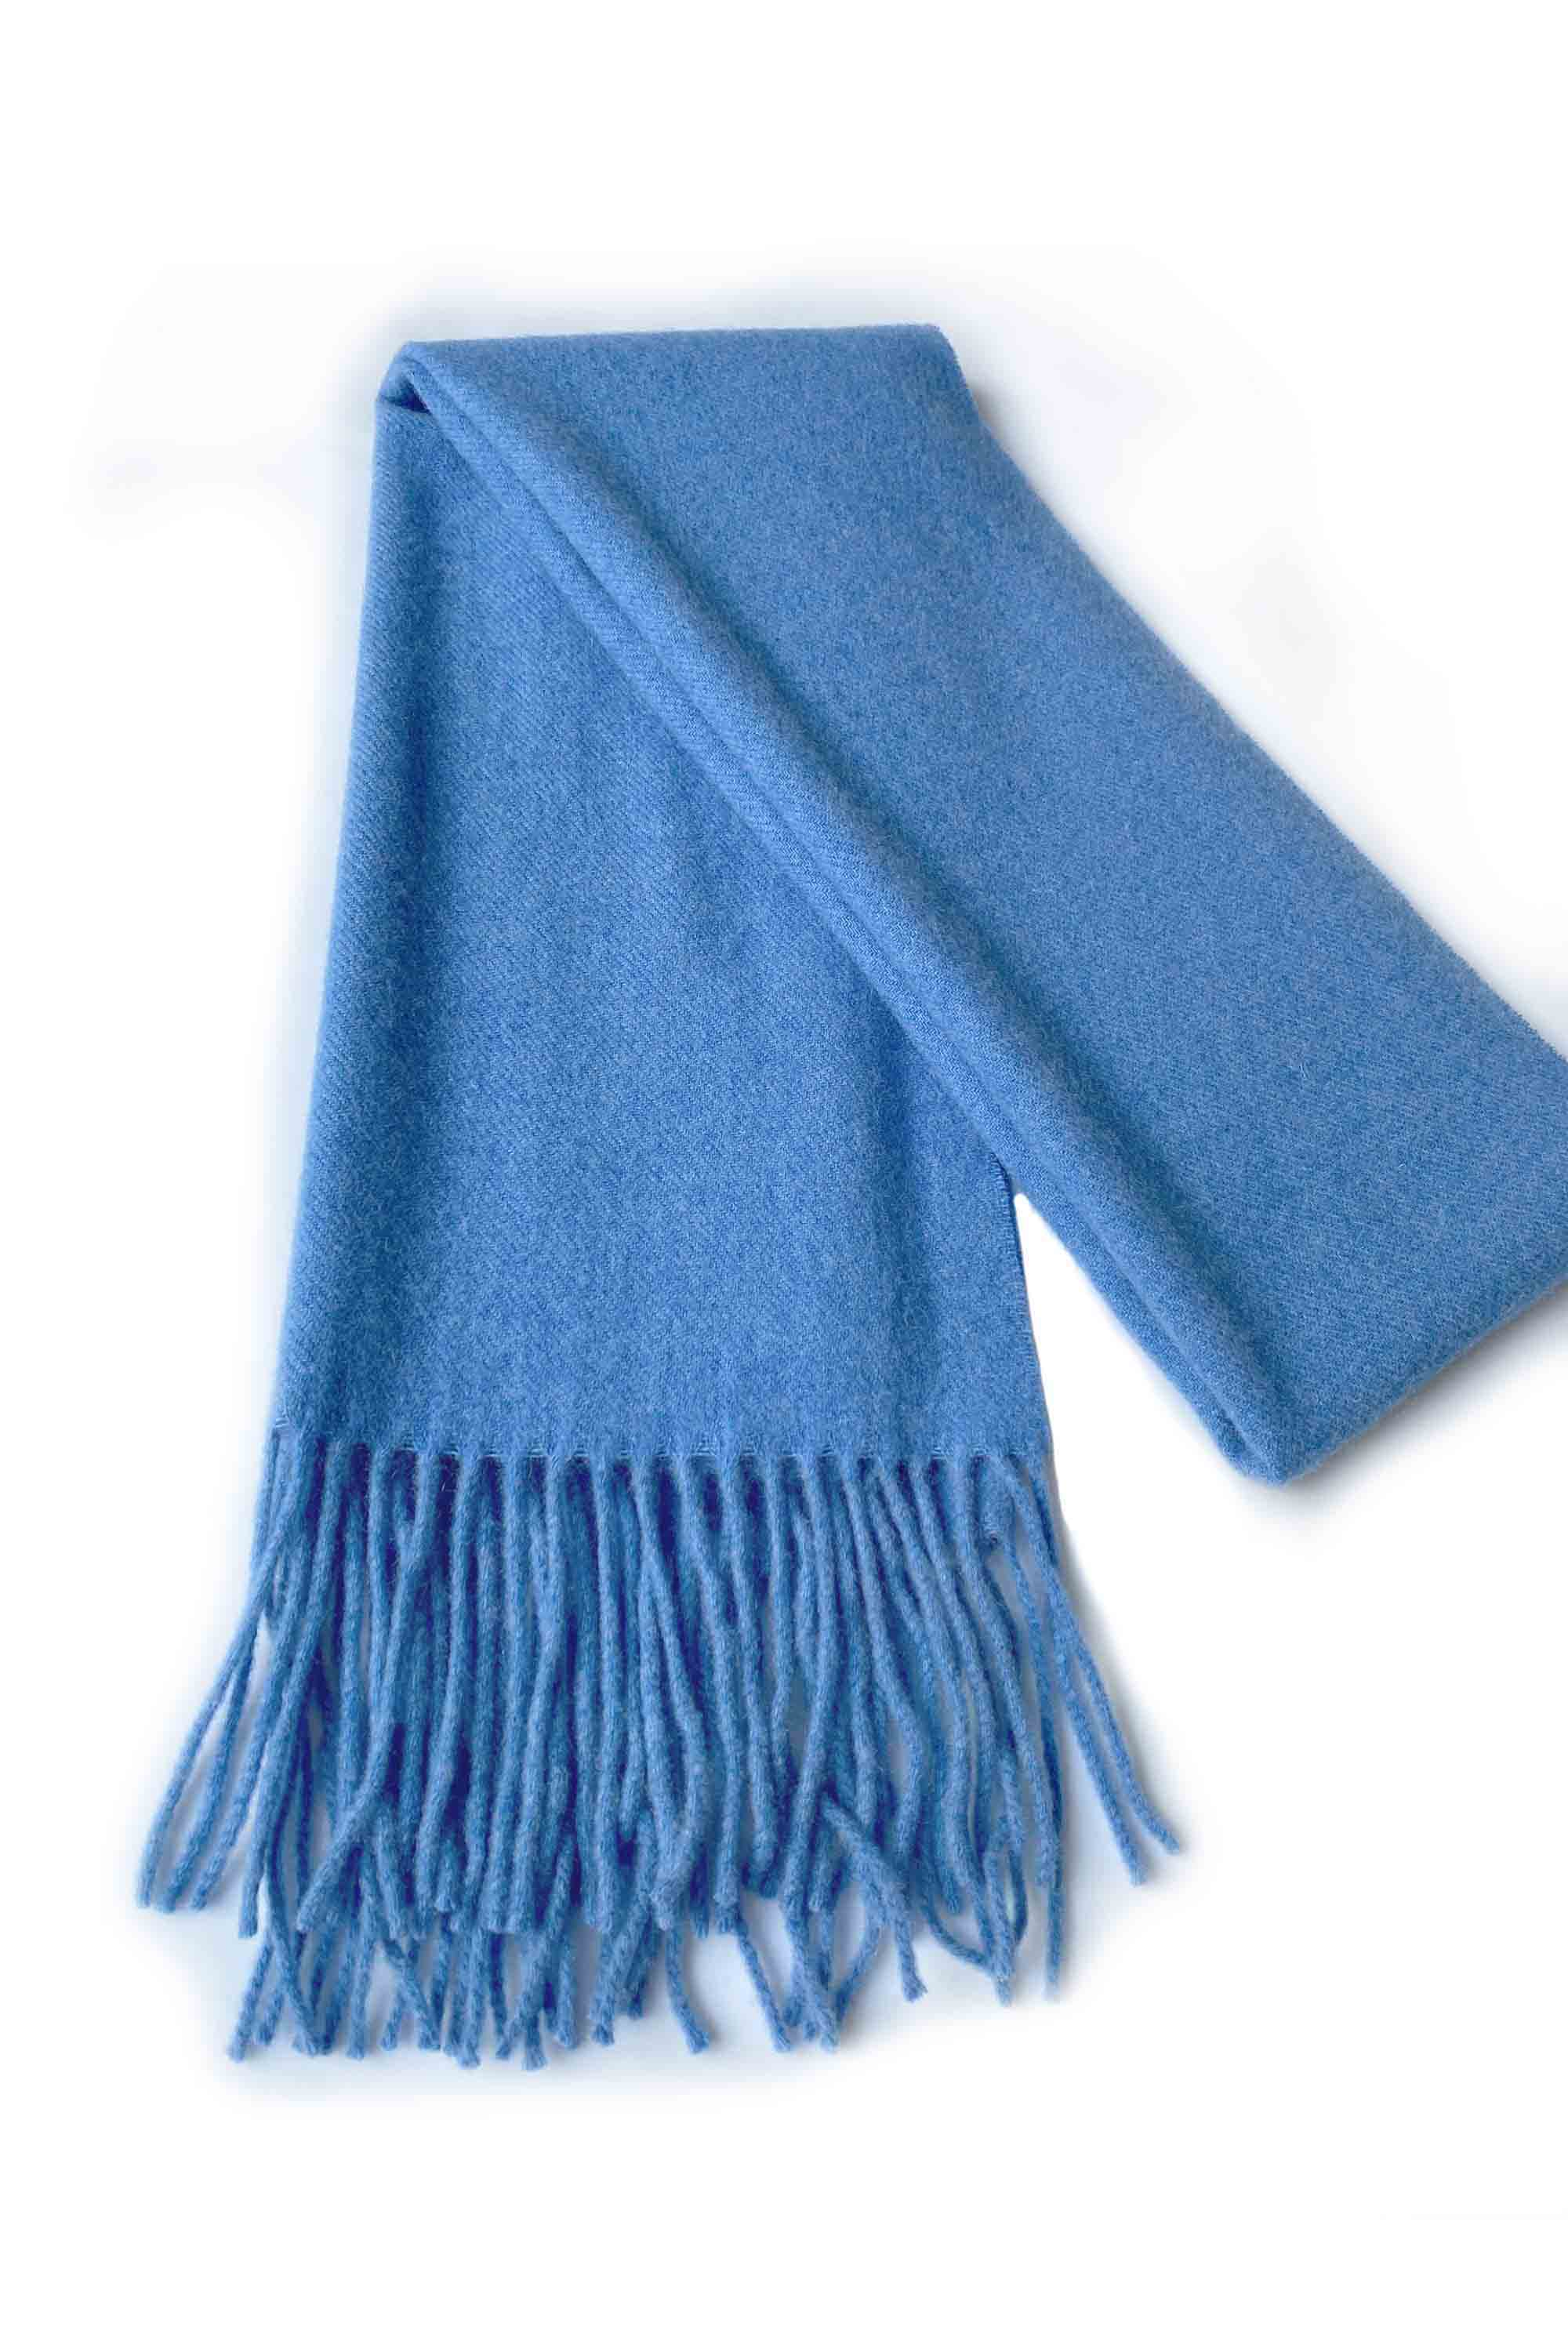 Unisex cashmere scarf with fringes in blue